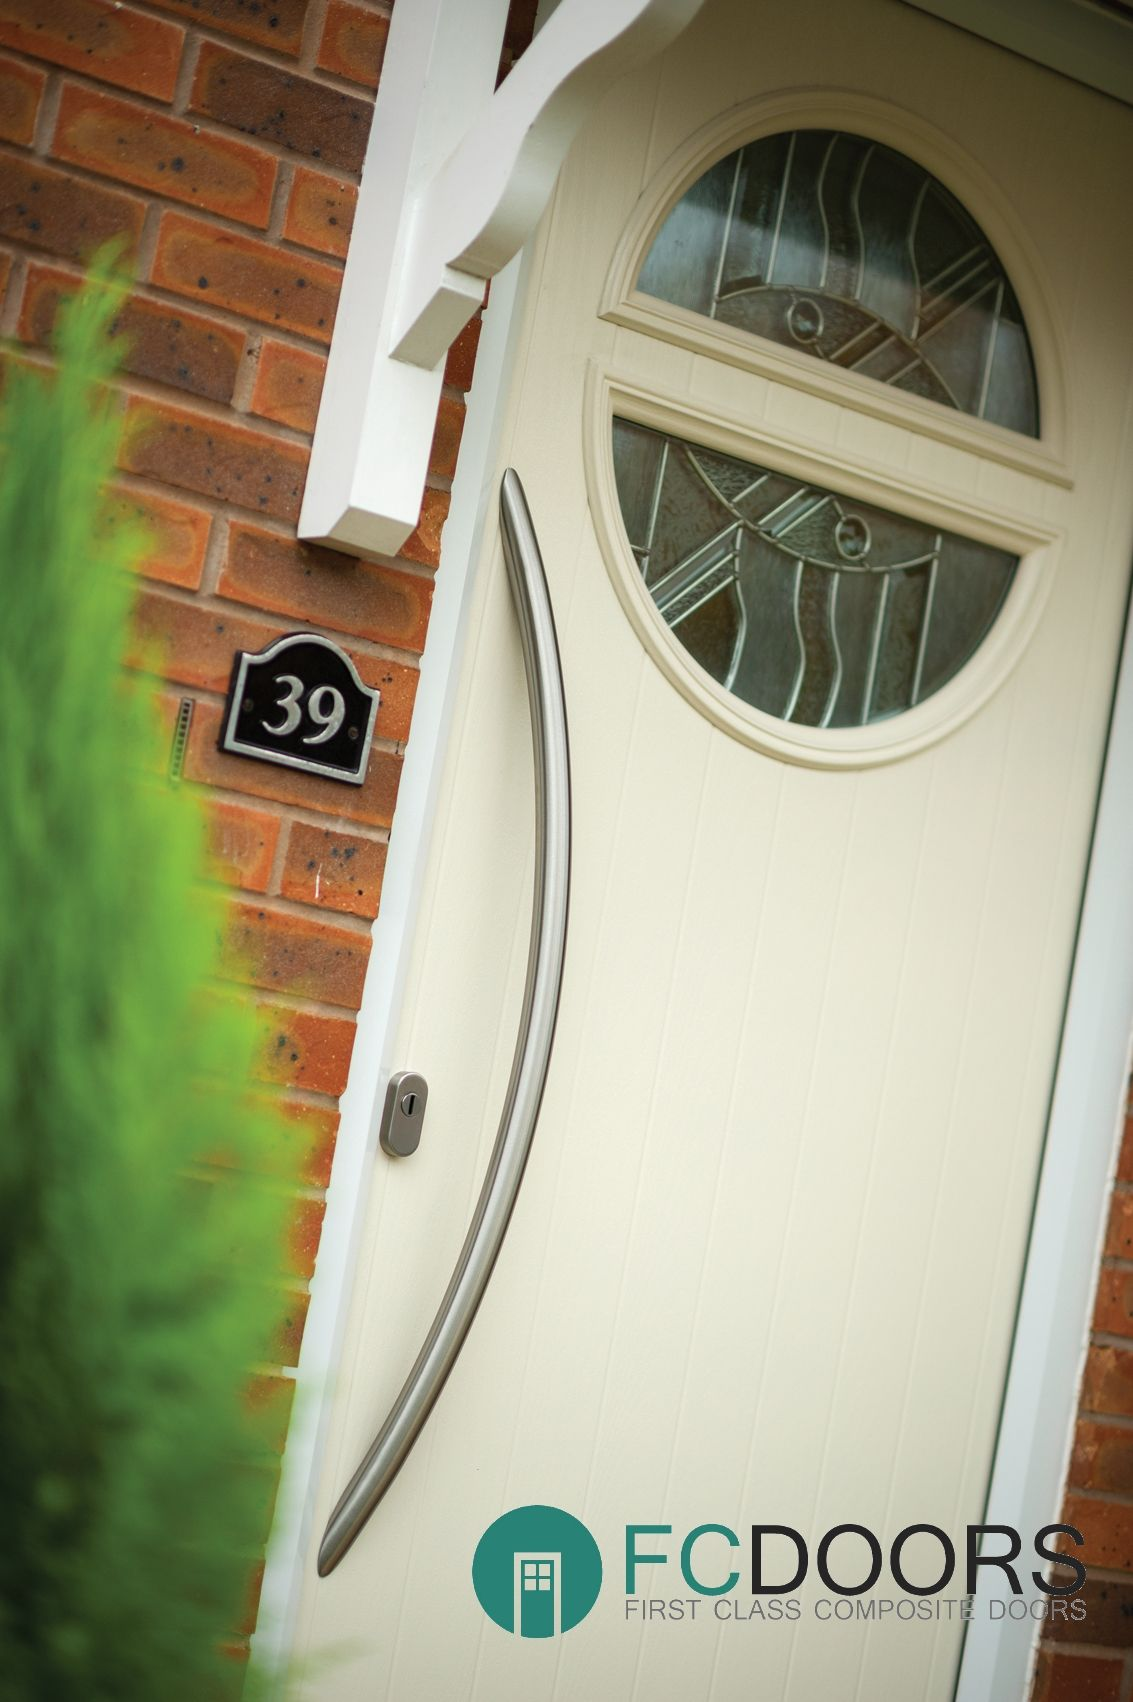 Contemporary Cream Circle Composite Door With A Long Bow Handle Making Your Home Unique And Giving It New Modern Feel Www Fcdoors Co Uk